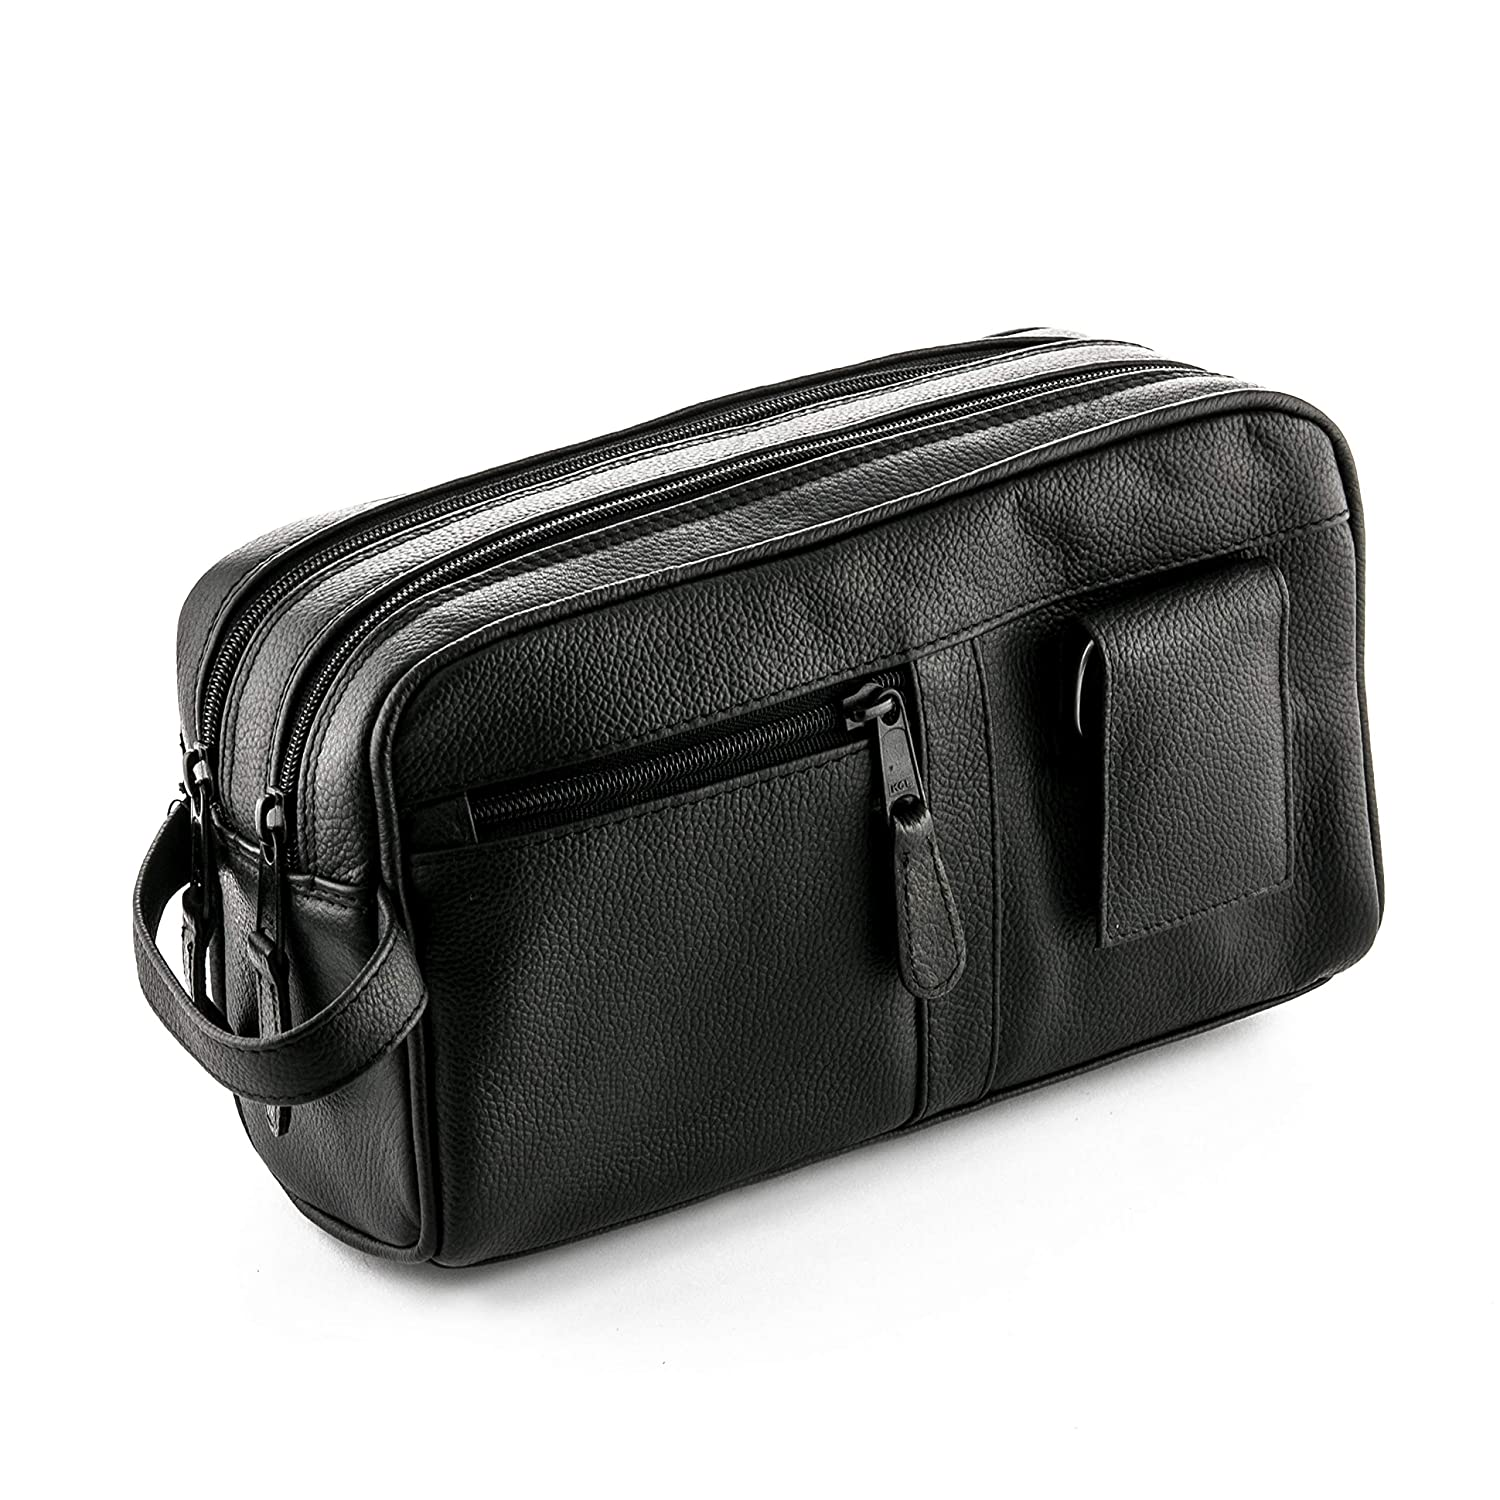 ZOHL Leather Travel Toiletry Bag With Manicure Set Made in Germany ZO1850MS